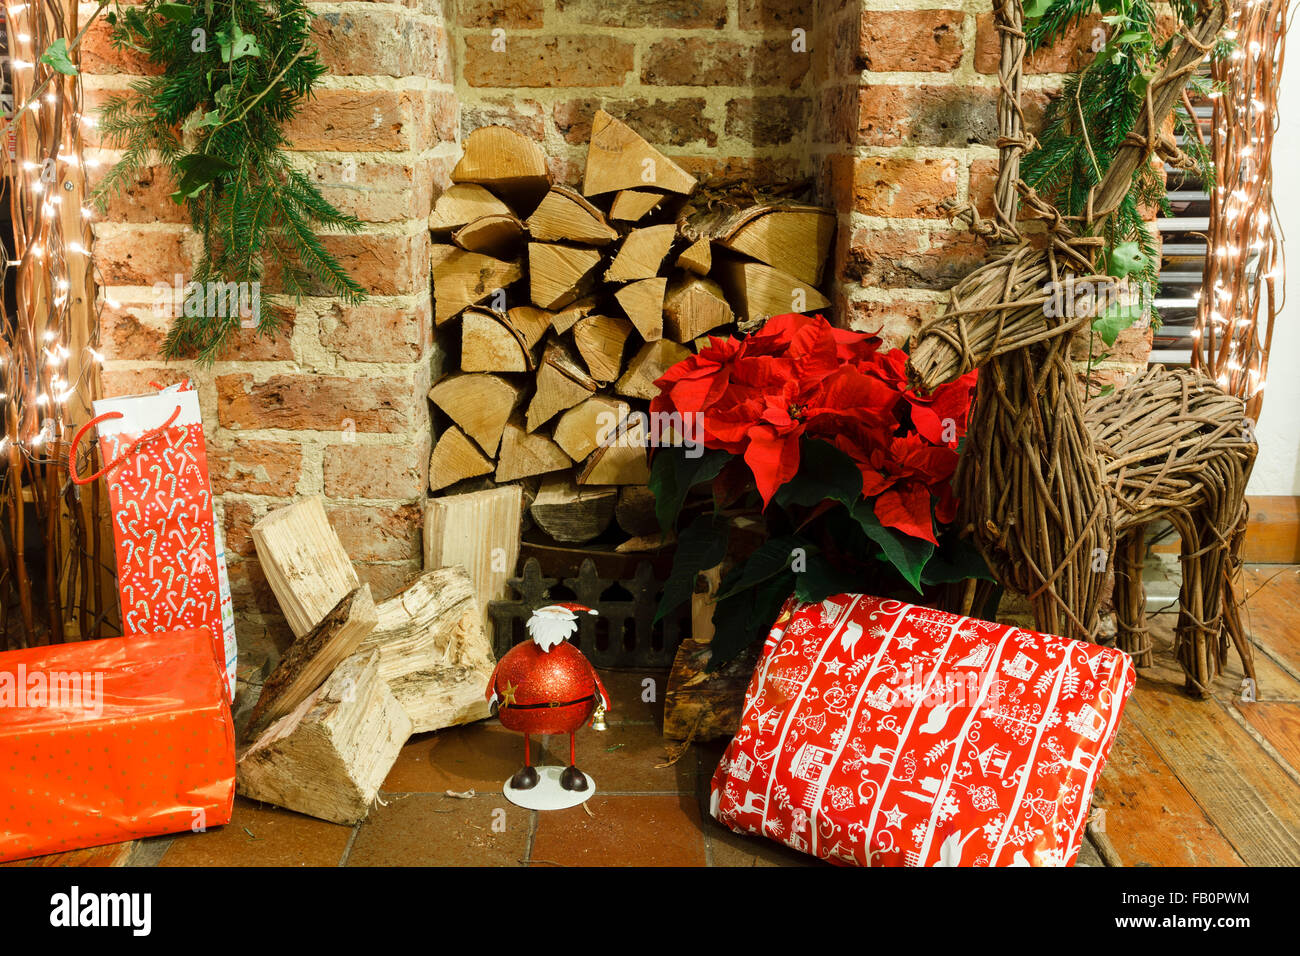 Christmas gifts and presents by a fireplace in an English living room, UK - Stock Image